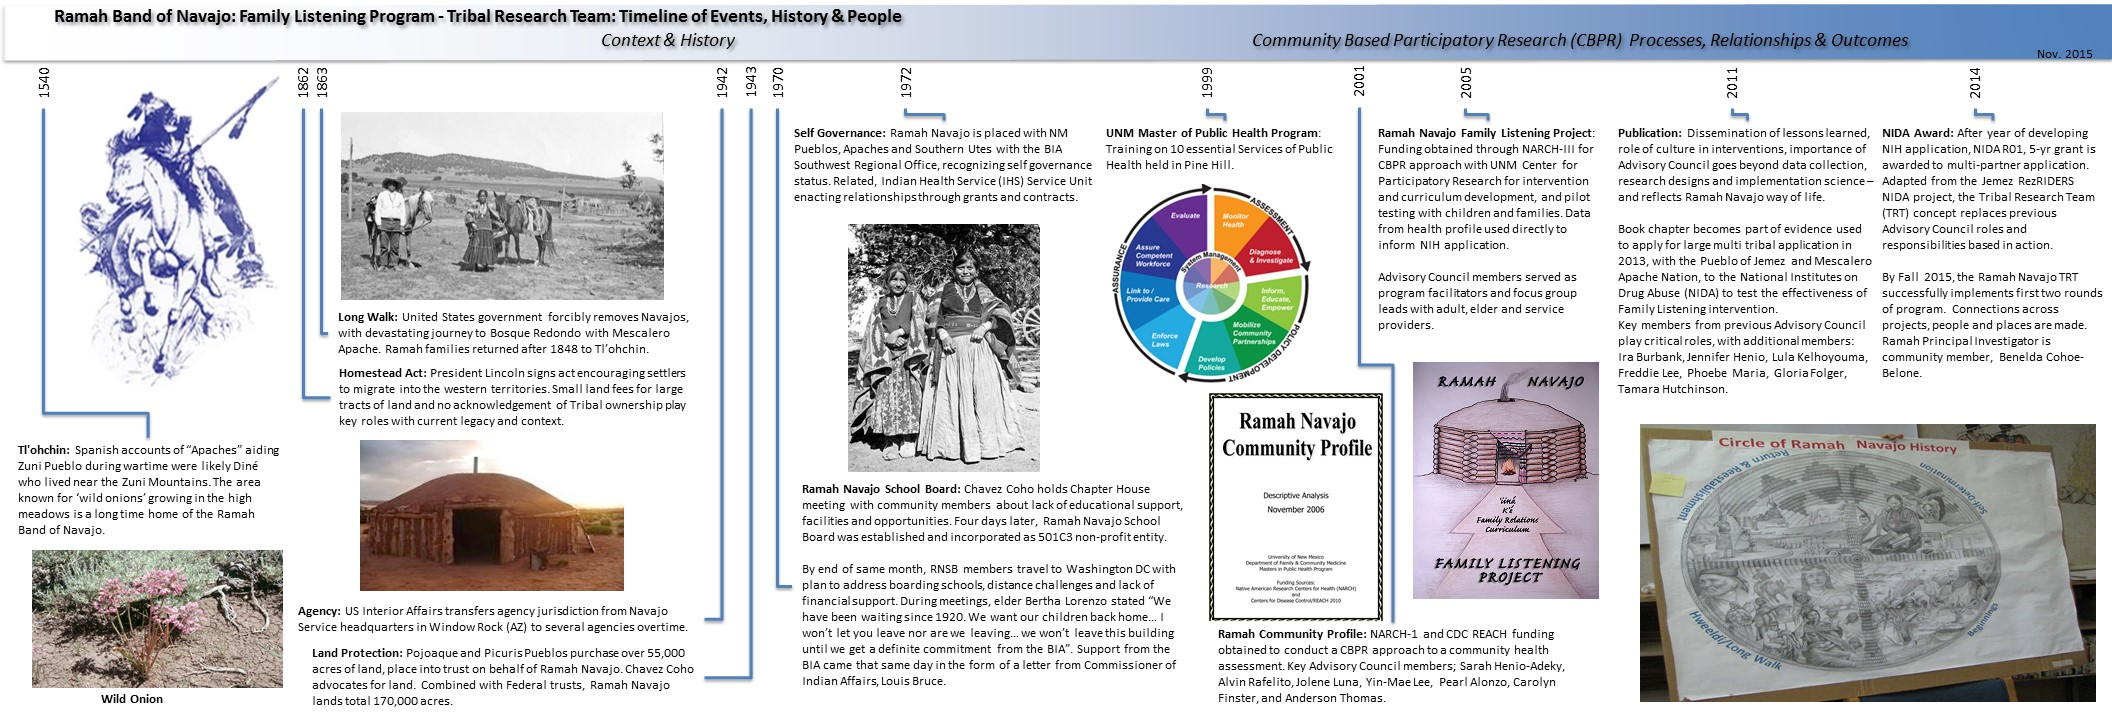 historical timelines center for participatory research the